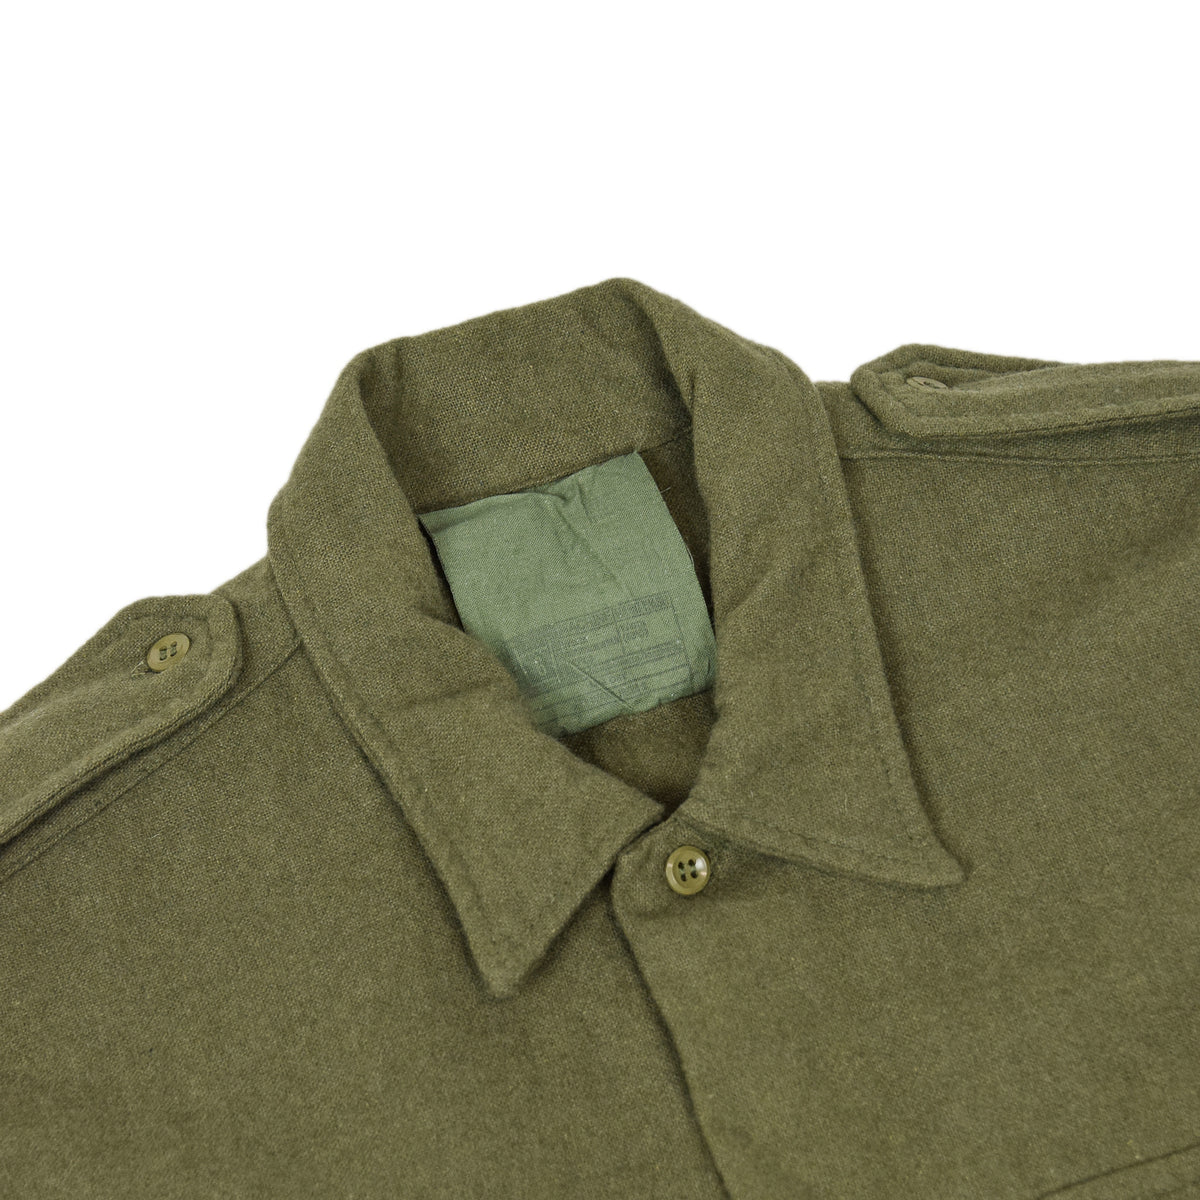 Vintage 80s British Army Mans Combat Wool Shirt Olive Green S COLLAR